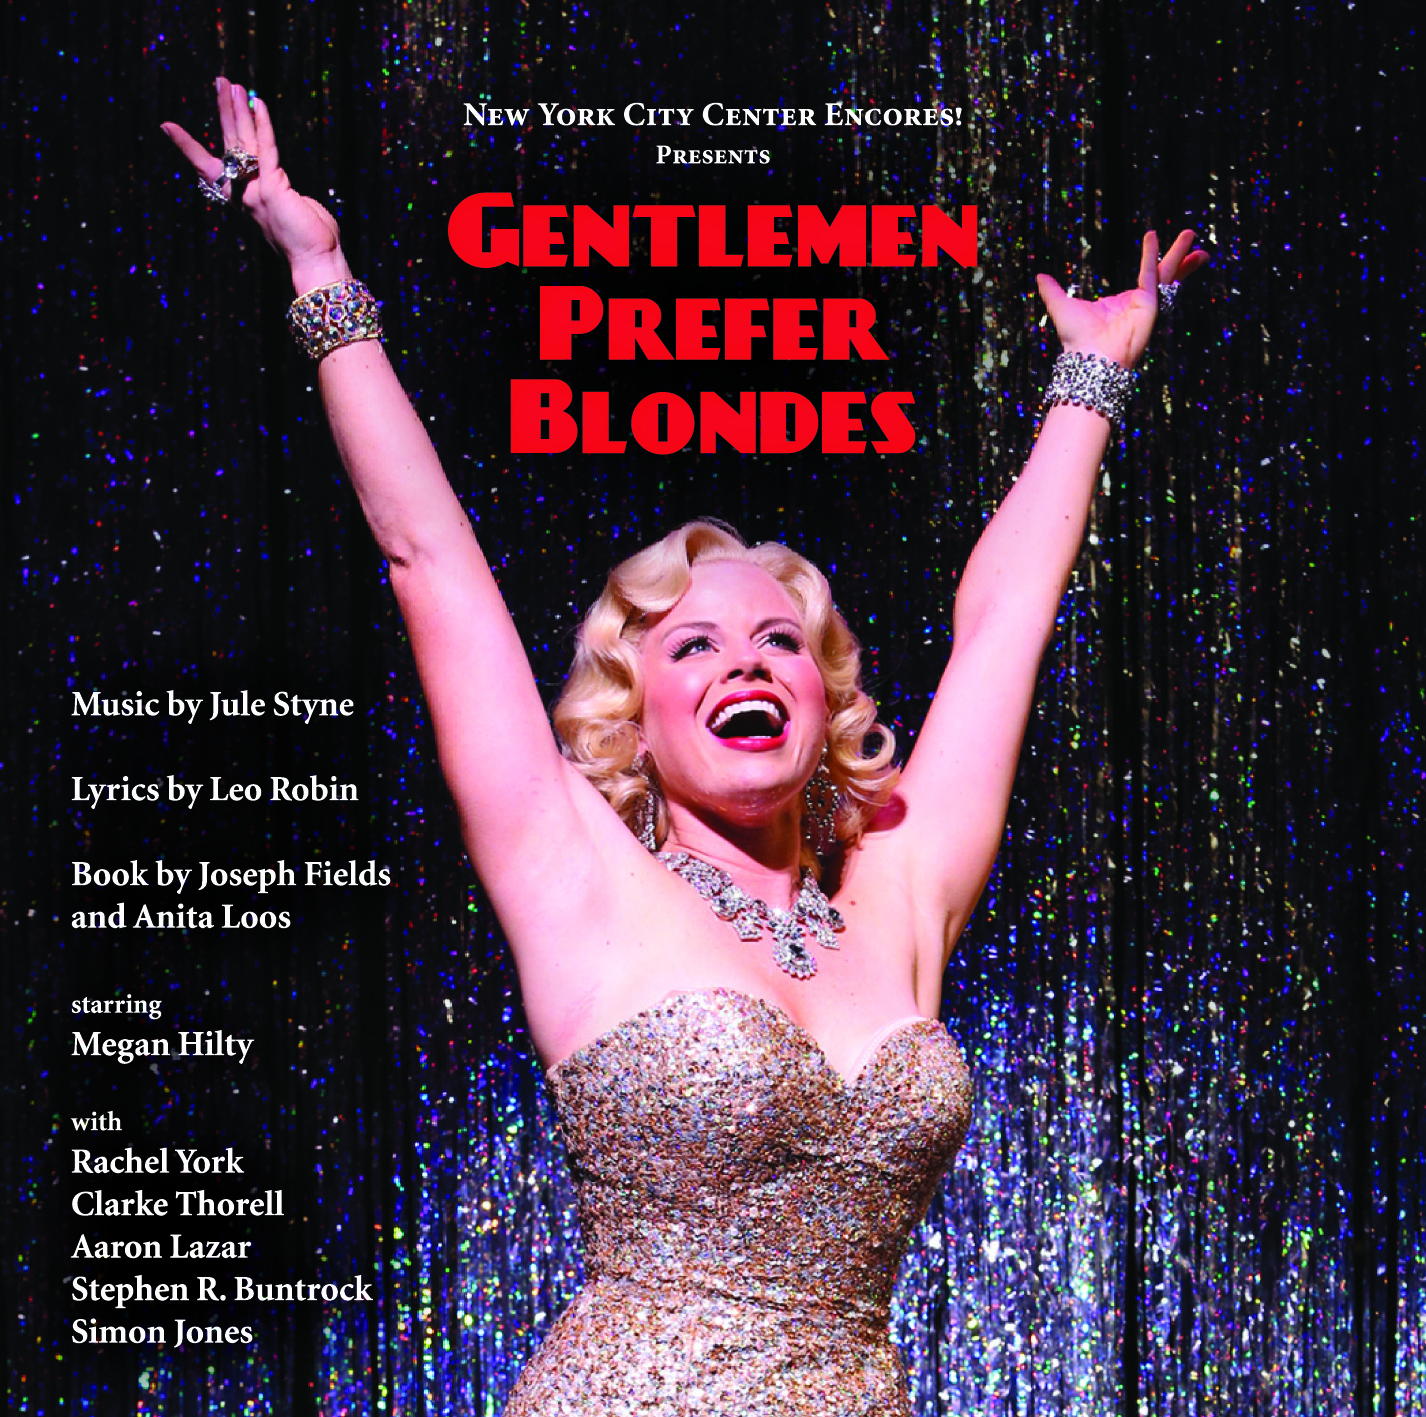 Gentlemen Prefer Blondes: Encores! Cast Recording 2012